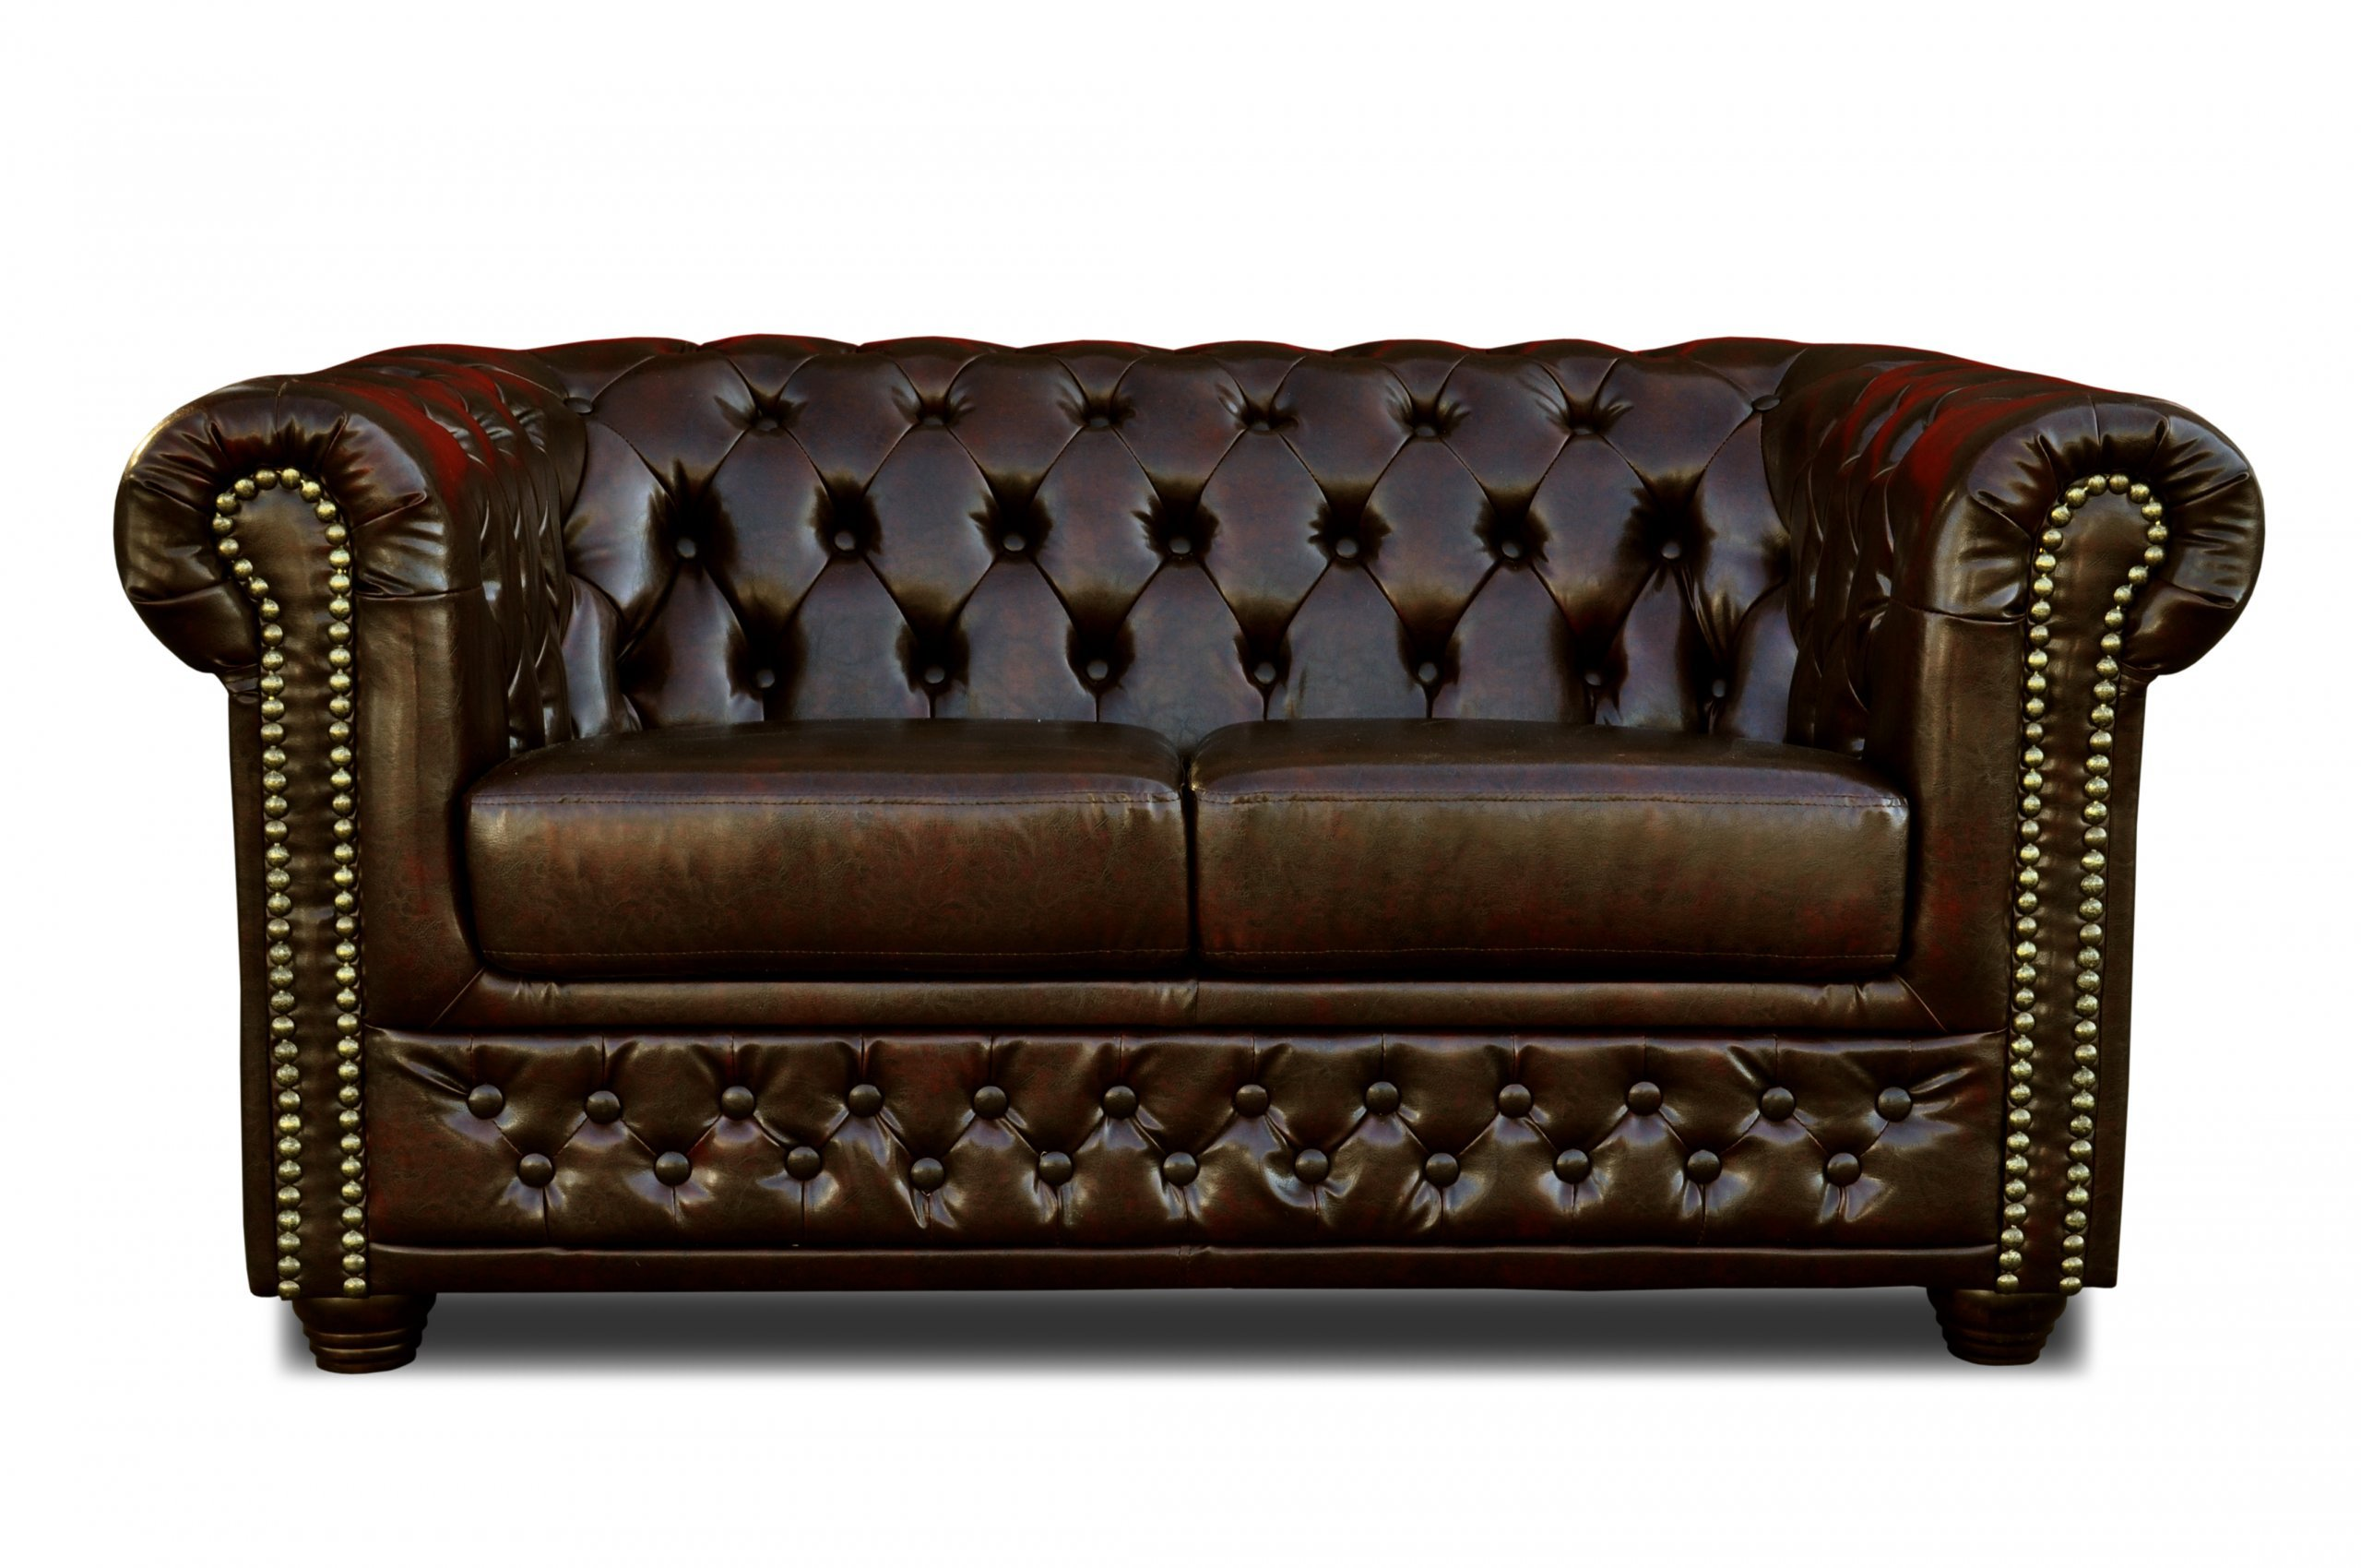 chesterfield sofa 3 2er sitzer sessel couch garnitur. Black Bedroom Furniture Sets. Home Design Ideas